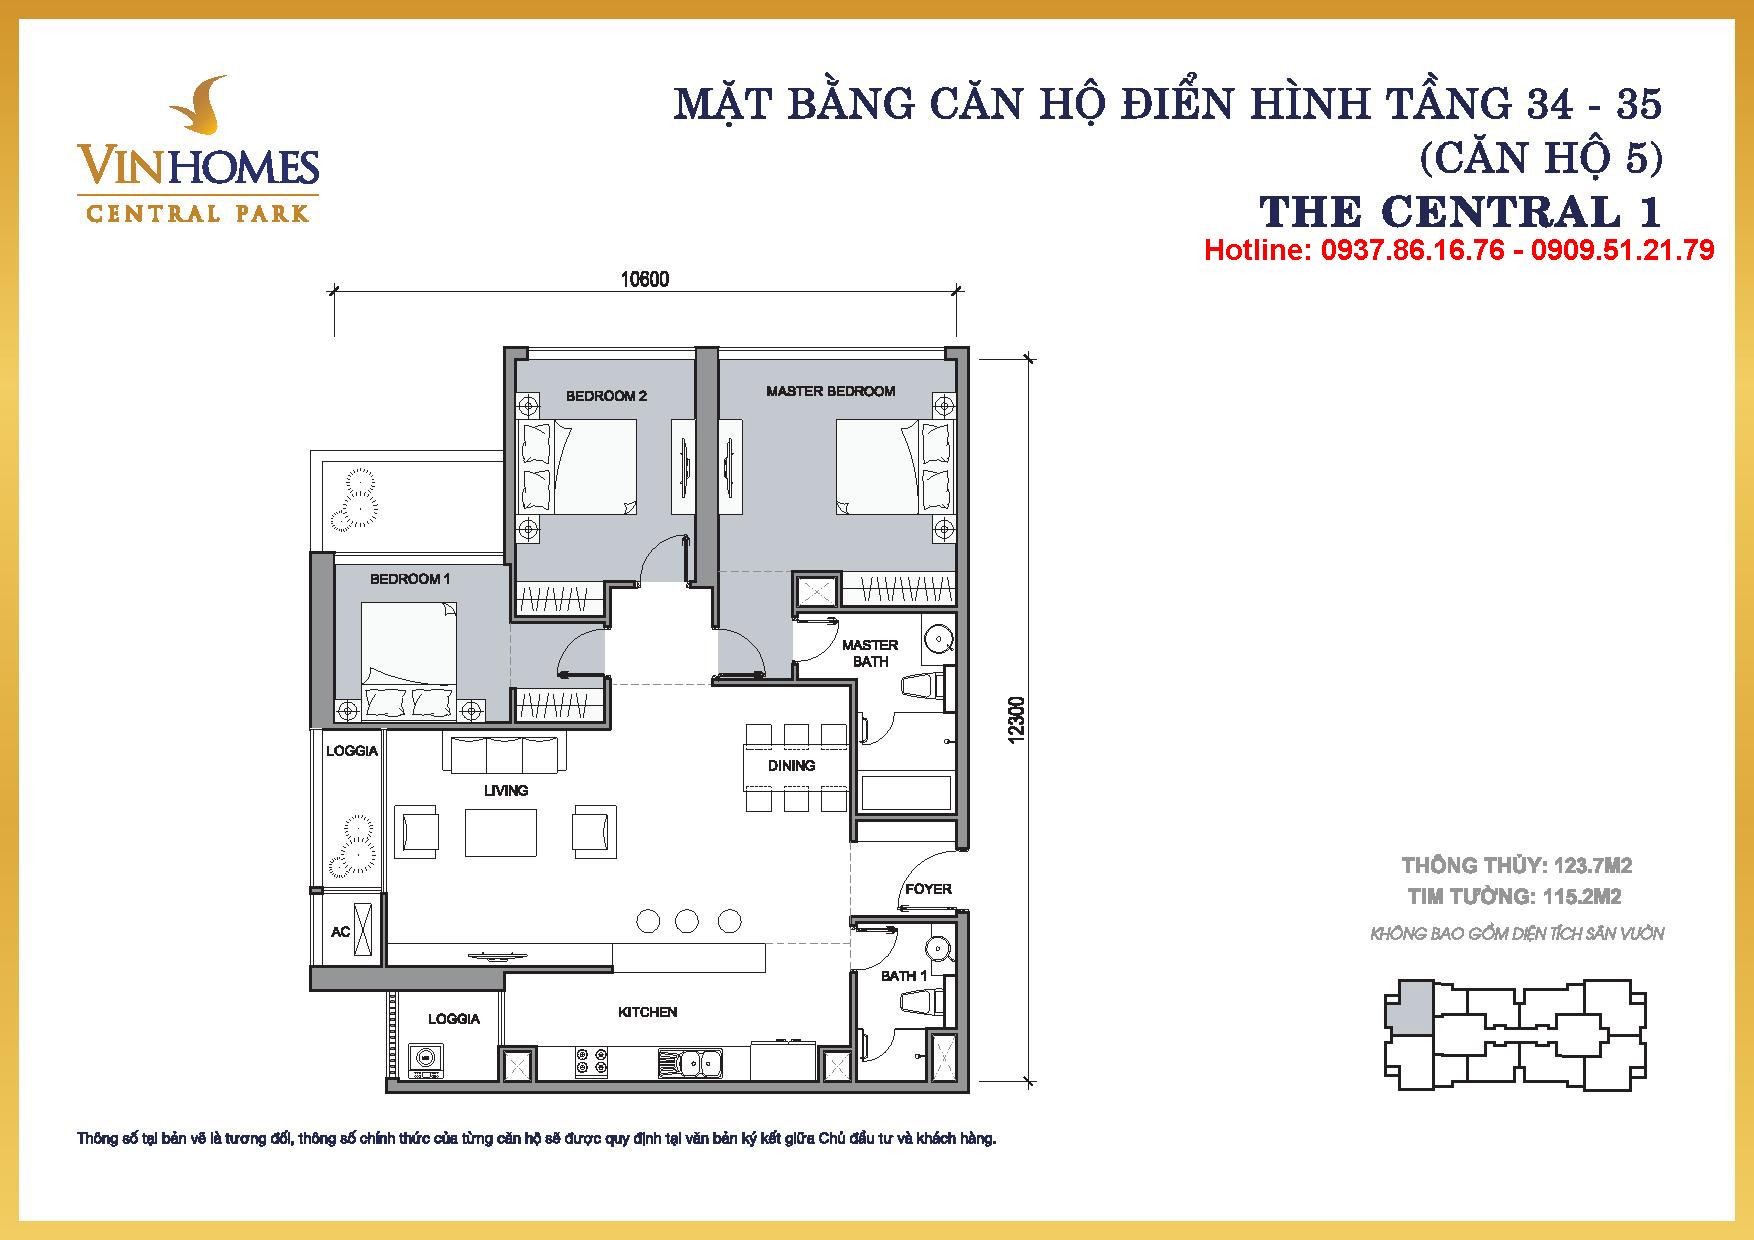 mặt bằng can-5-35-36-vinhomes central